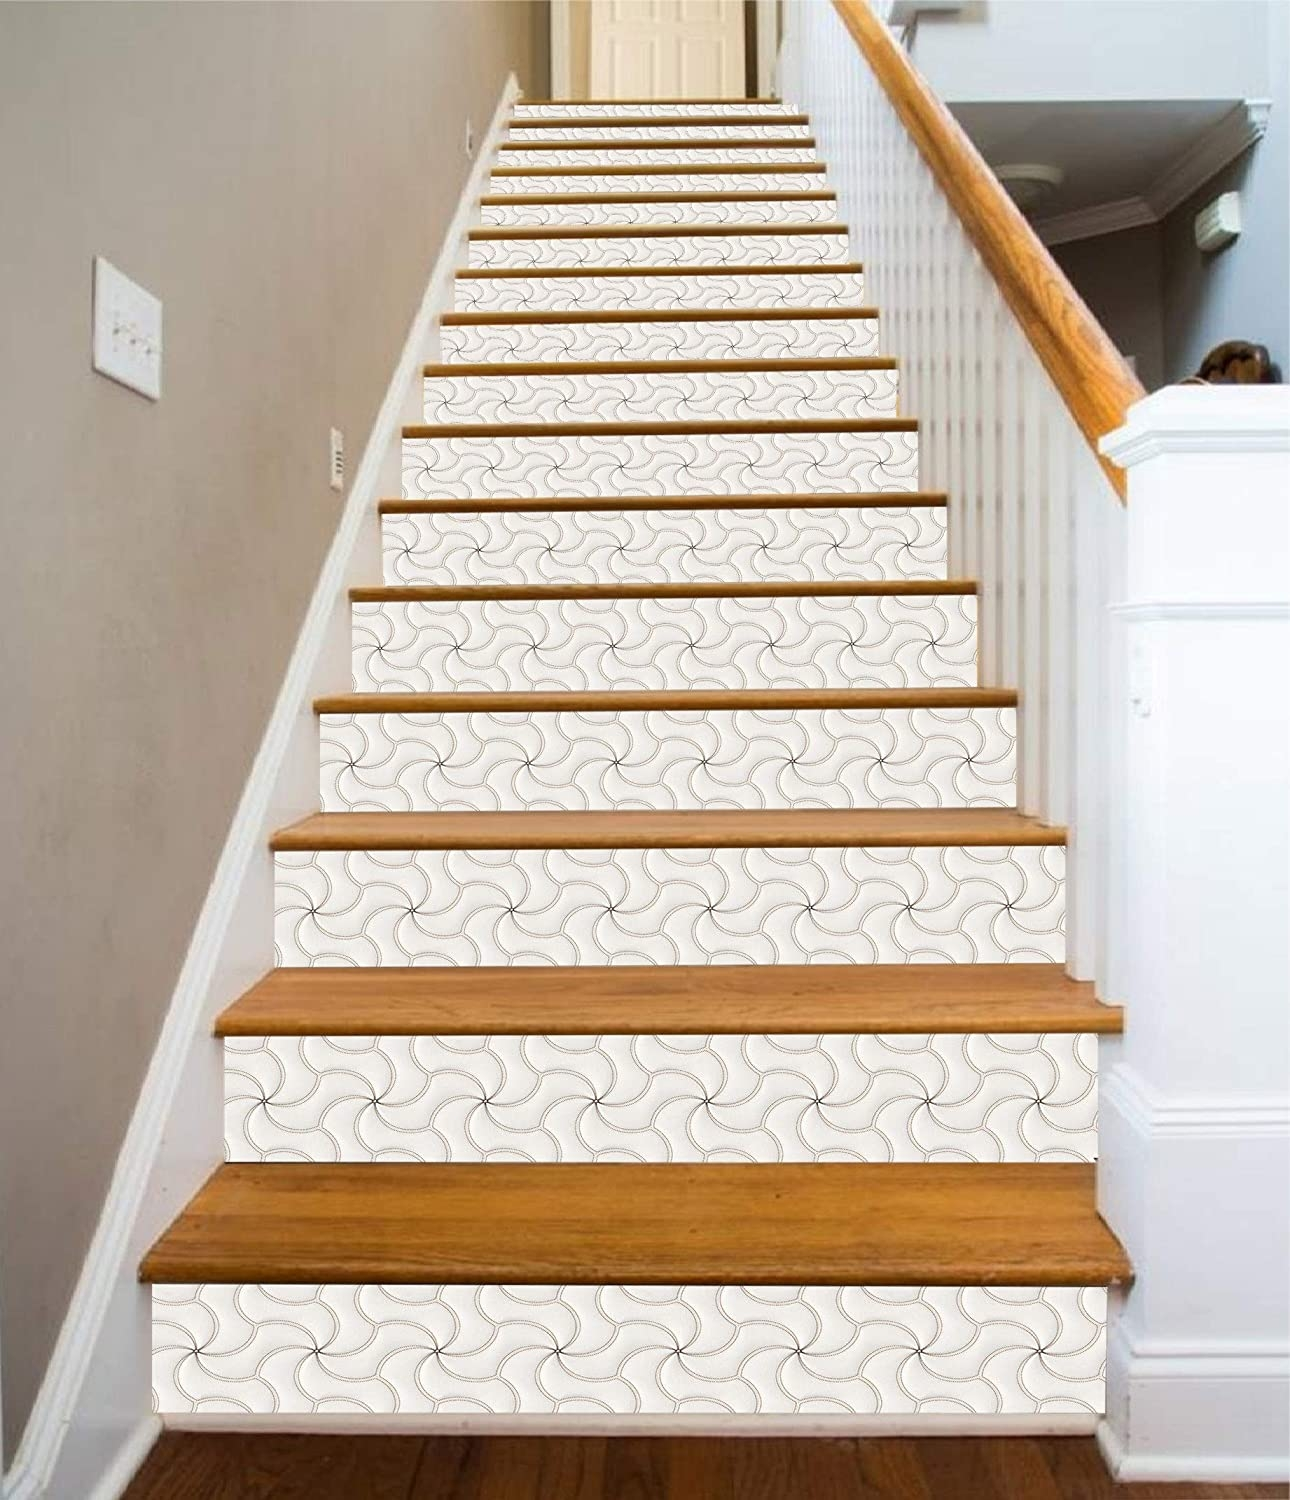 3D White Windmill 5793 Pattern Tile Marble Stair Risers Decoration | Wood Steps With White Risers | Timber | Wood Stair | Before And After | Color | Stair Tread